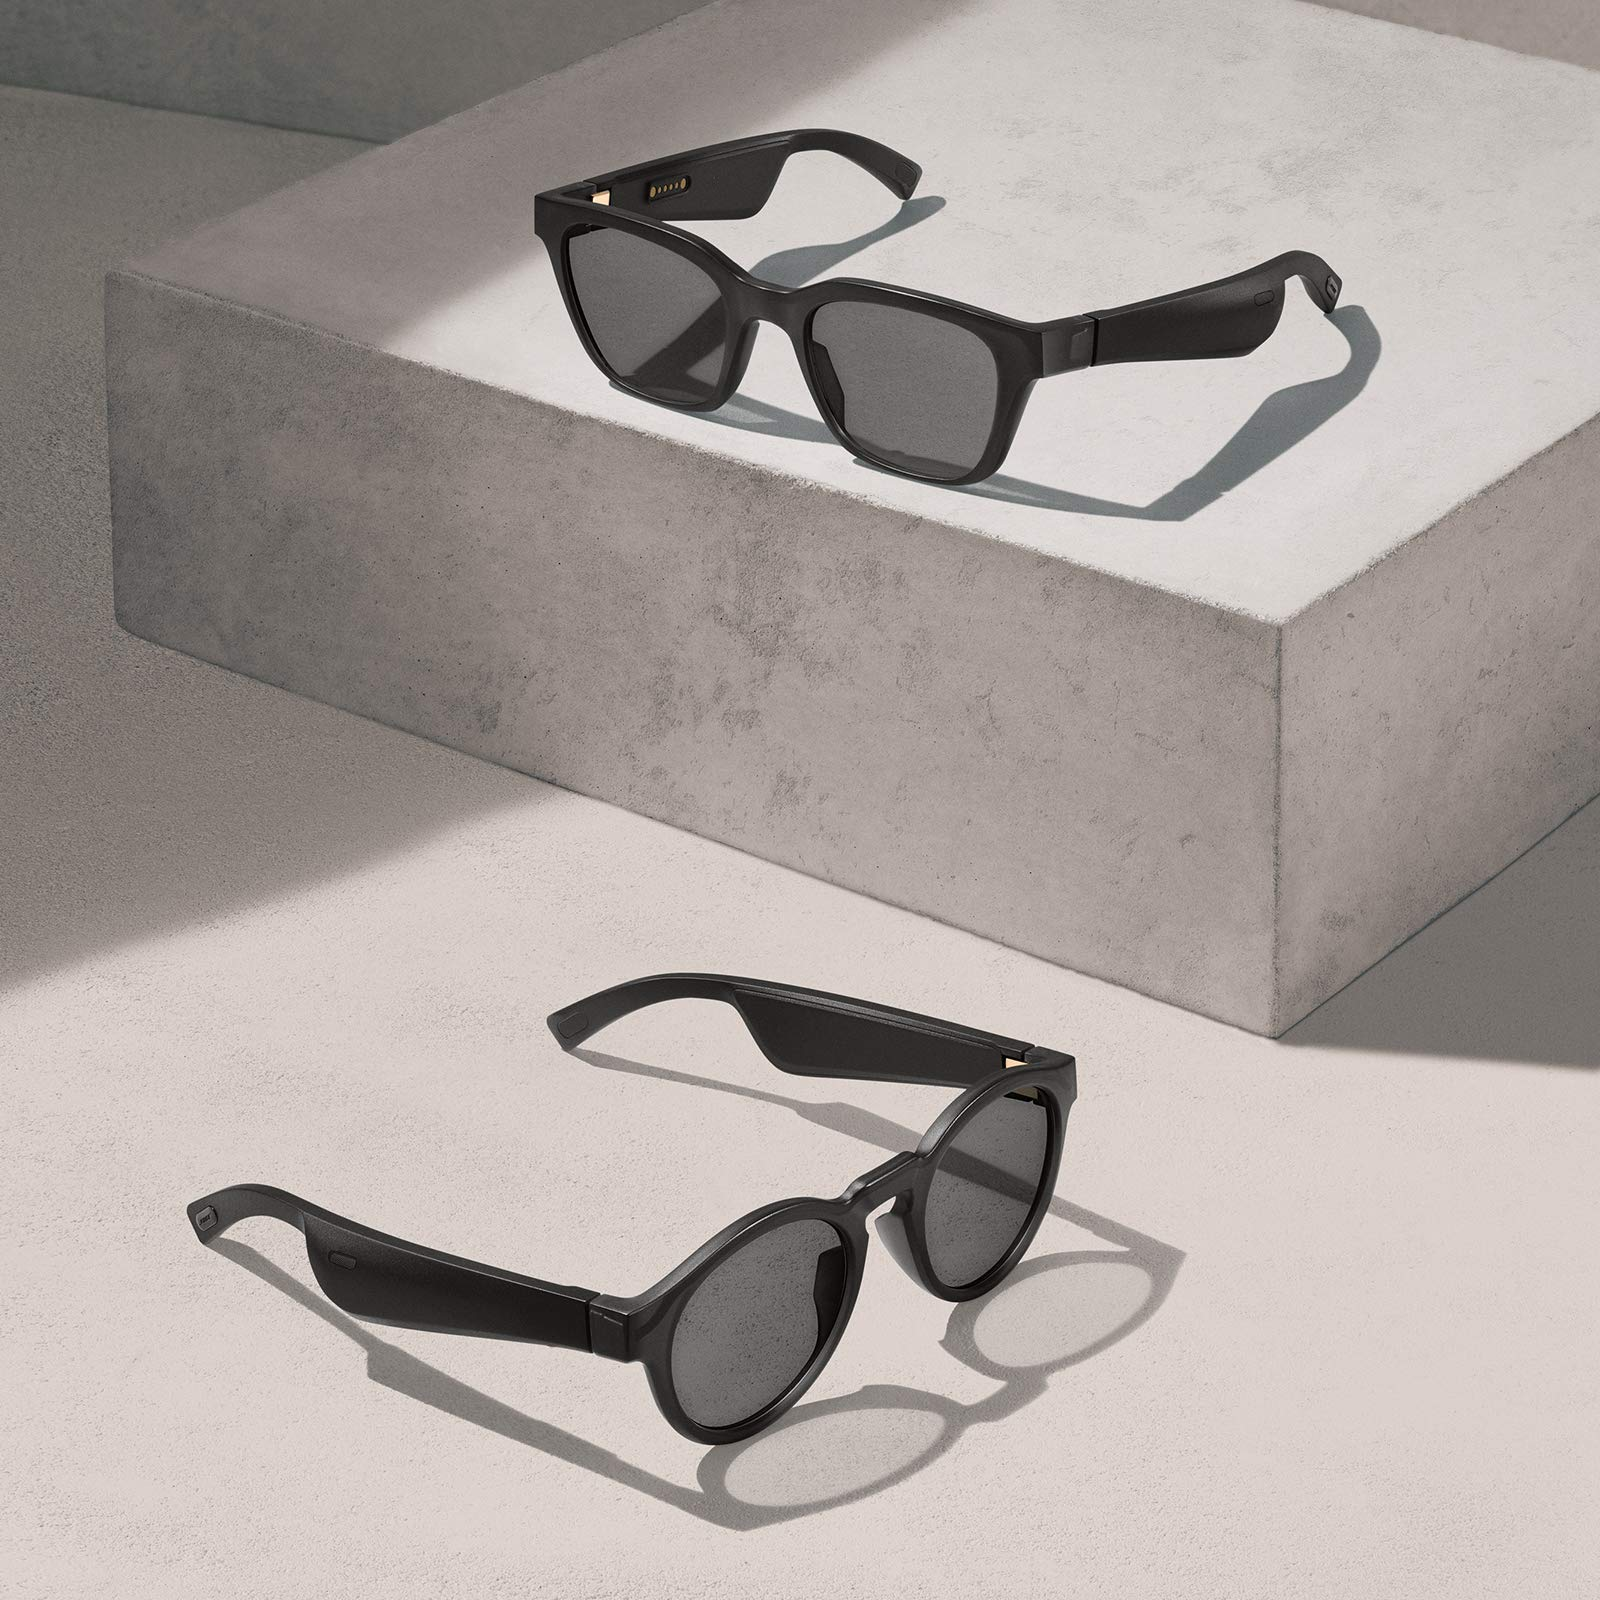 Bose Frames Audio Sunglasses, Alto, Black - with Bluetooth Connectivity by Bose (Image #7)